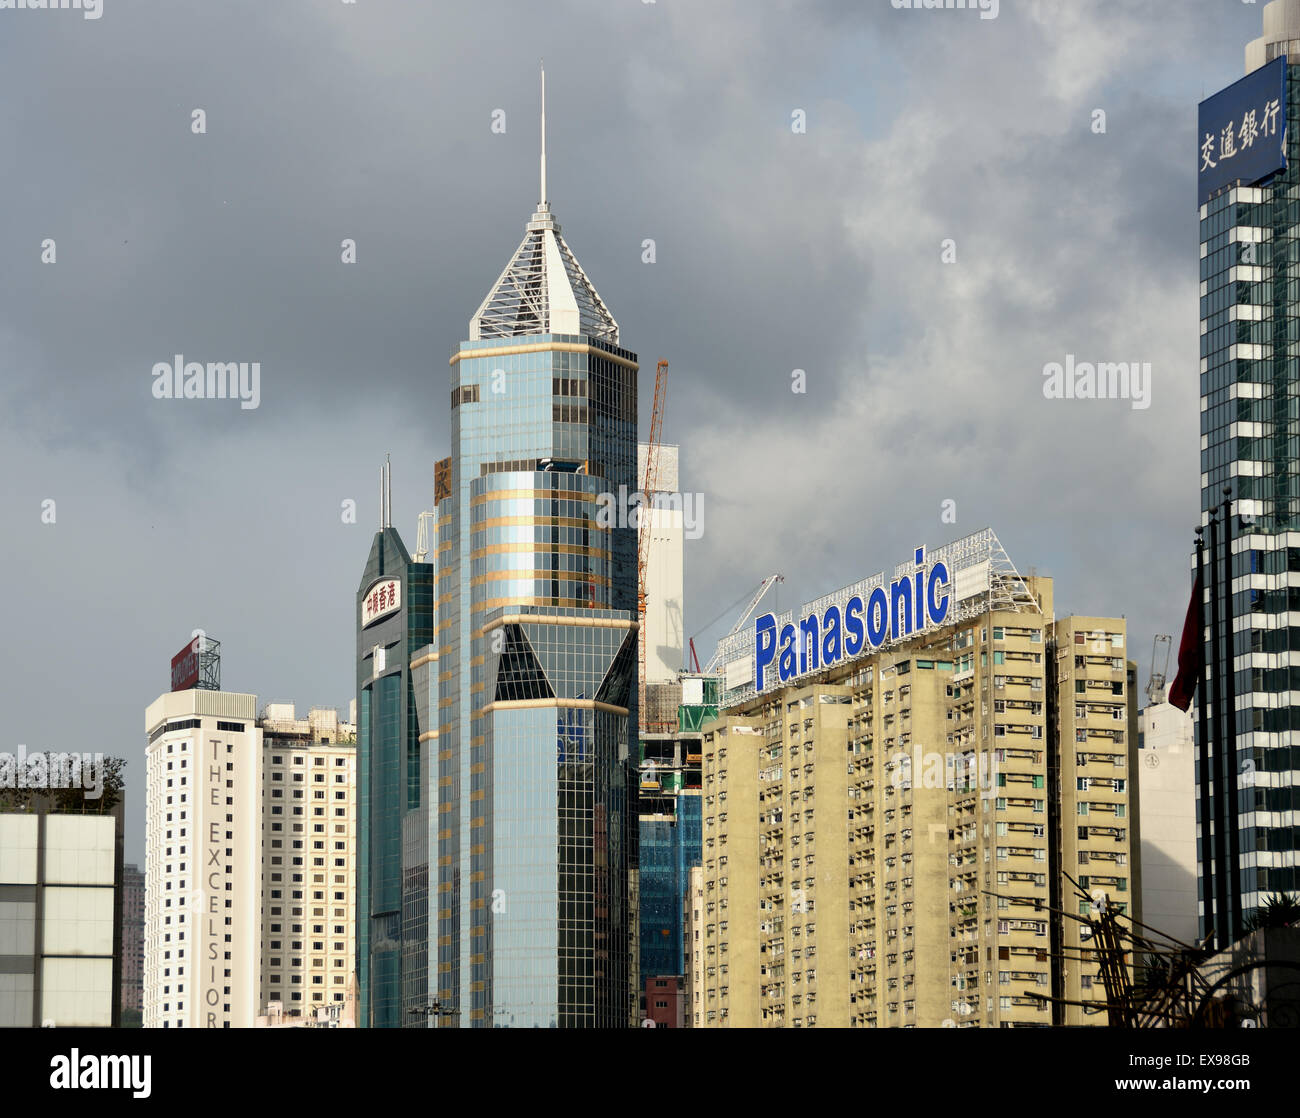 Panasonic - Hong Kong Island city skyline skyscrapers China Victoria Harbour - Stock Image